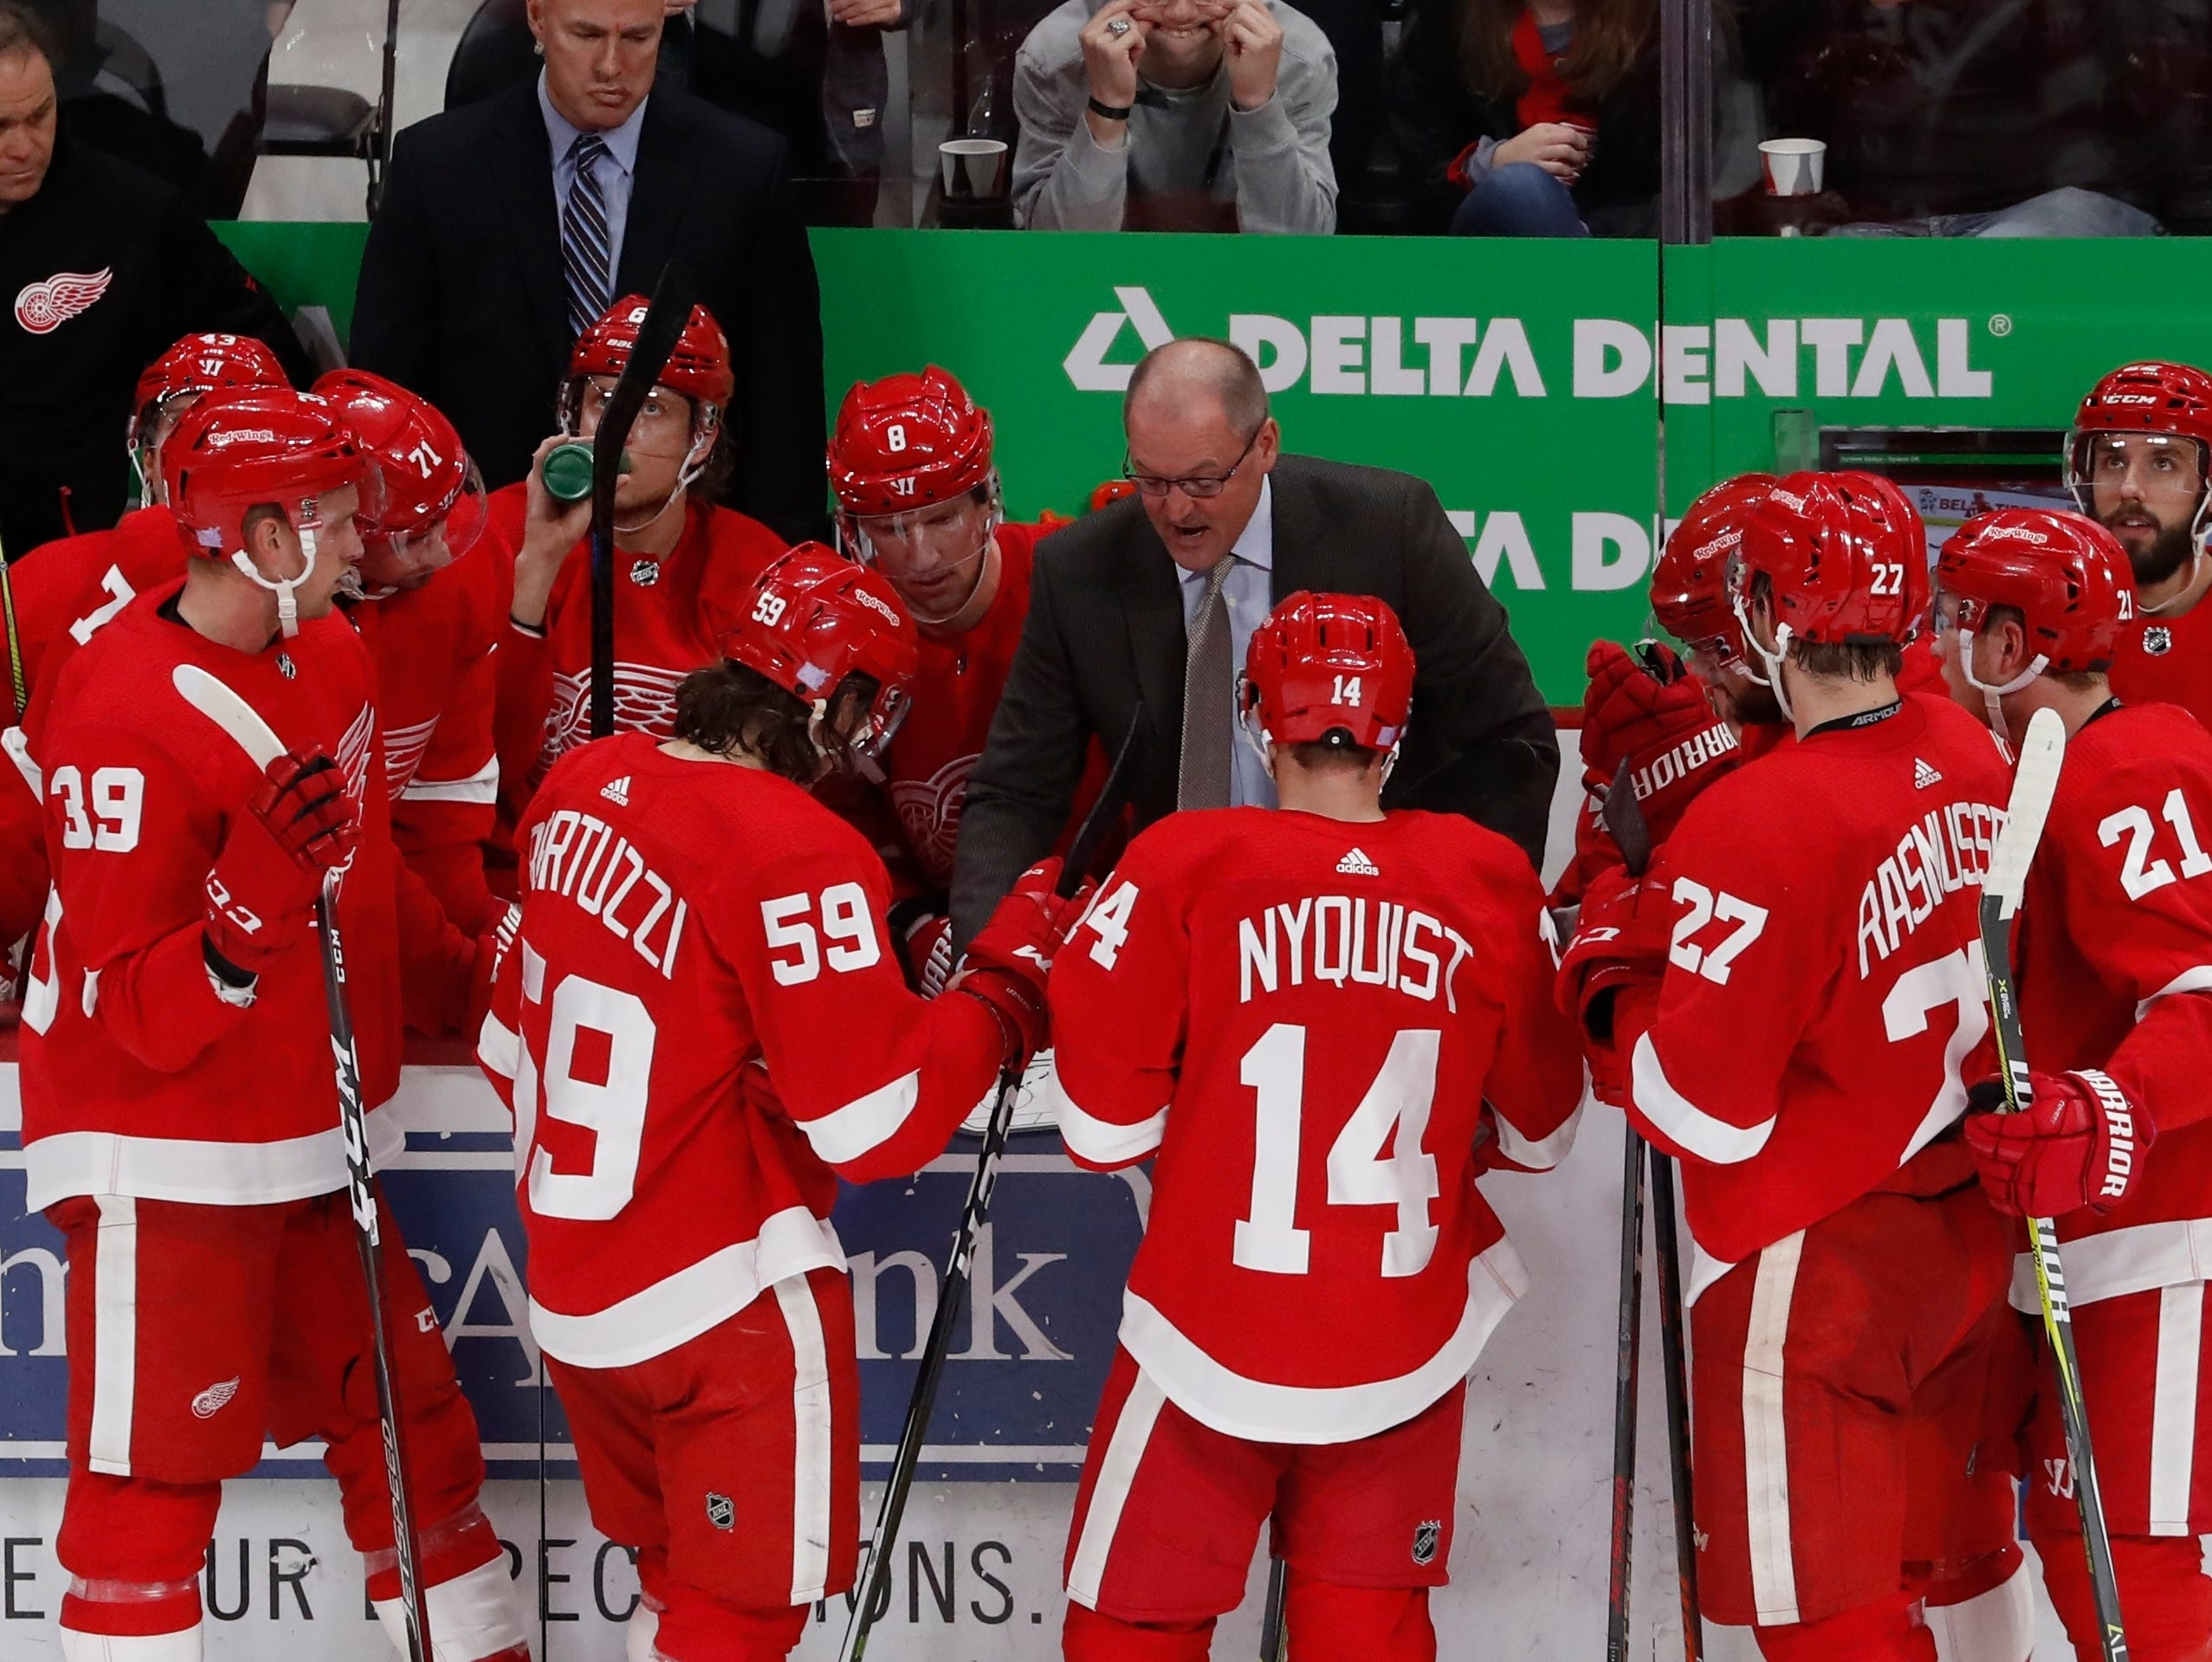 Detroit Red Wings assistant coach Dan Bylsma talks to the team during the third period of an NHL hockey game against the Edmonton Oilers, Saturday, Nov. 3, 2018, in Detroit. (AP Photo/Carlos Osorio)